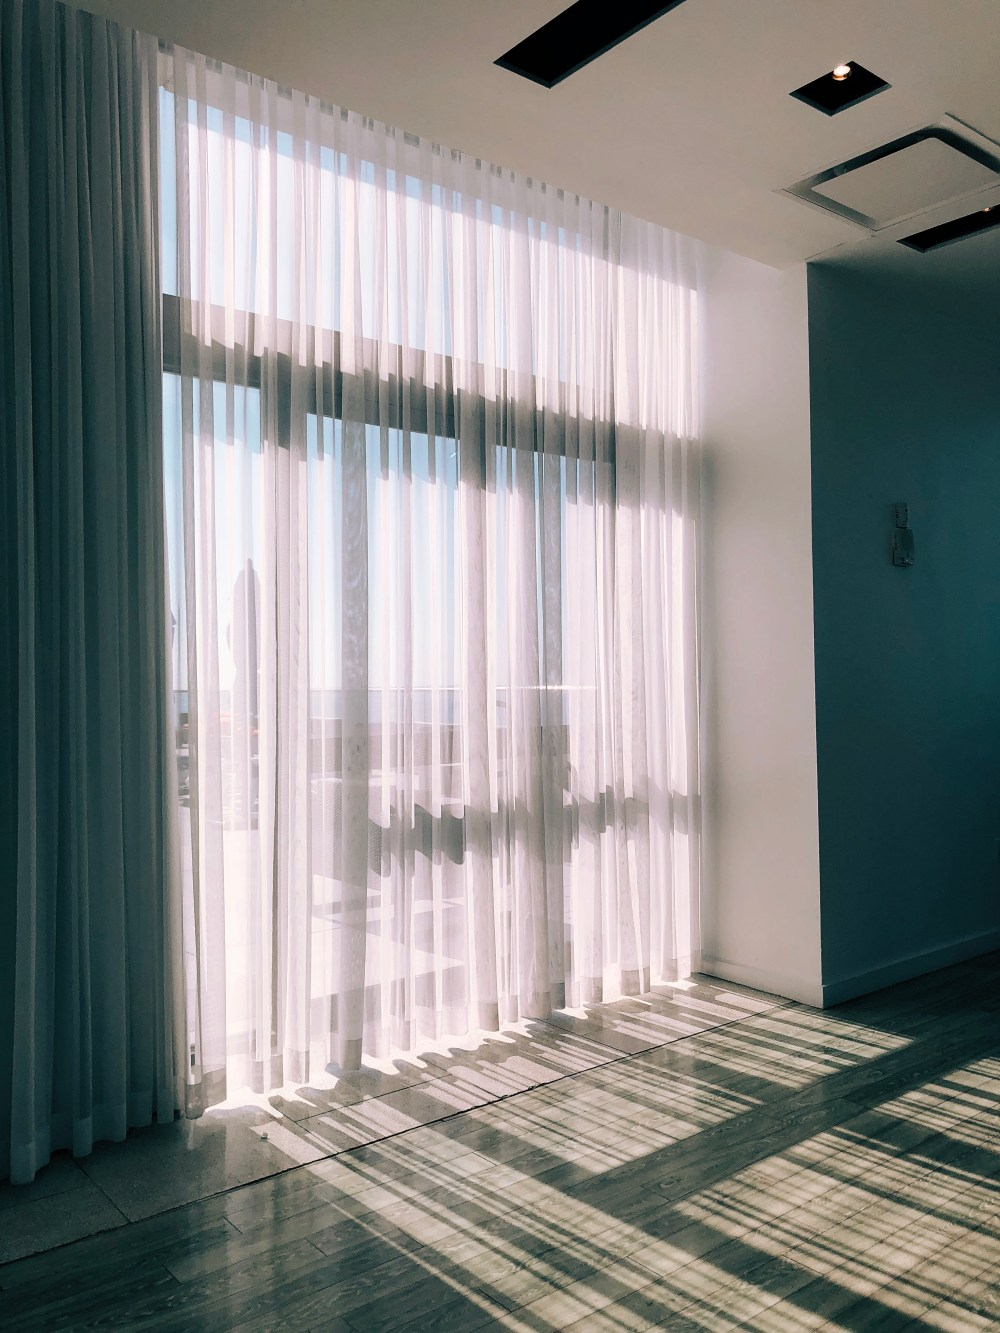 27 curtain pictures download free